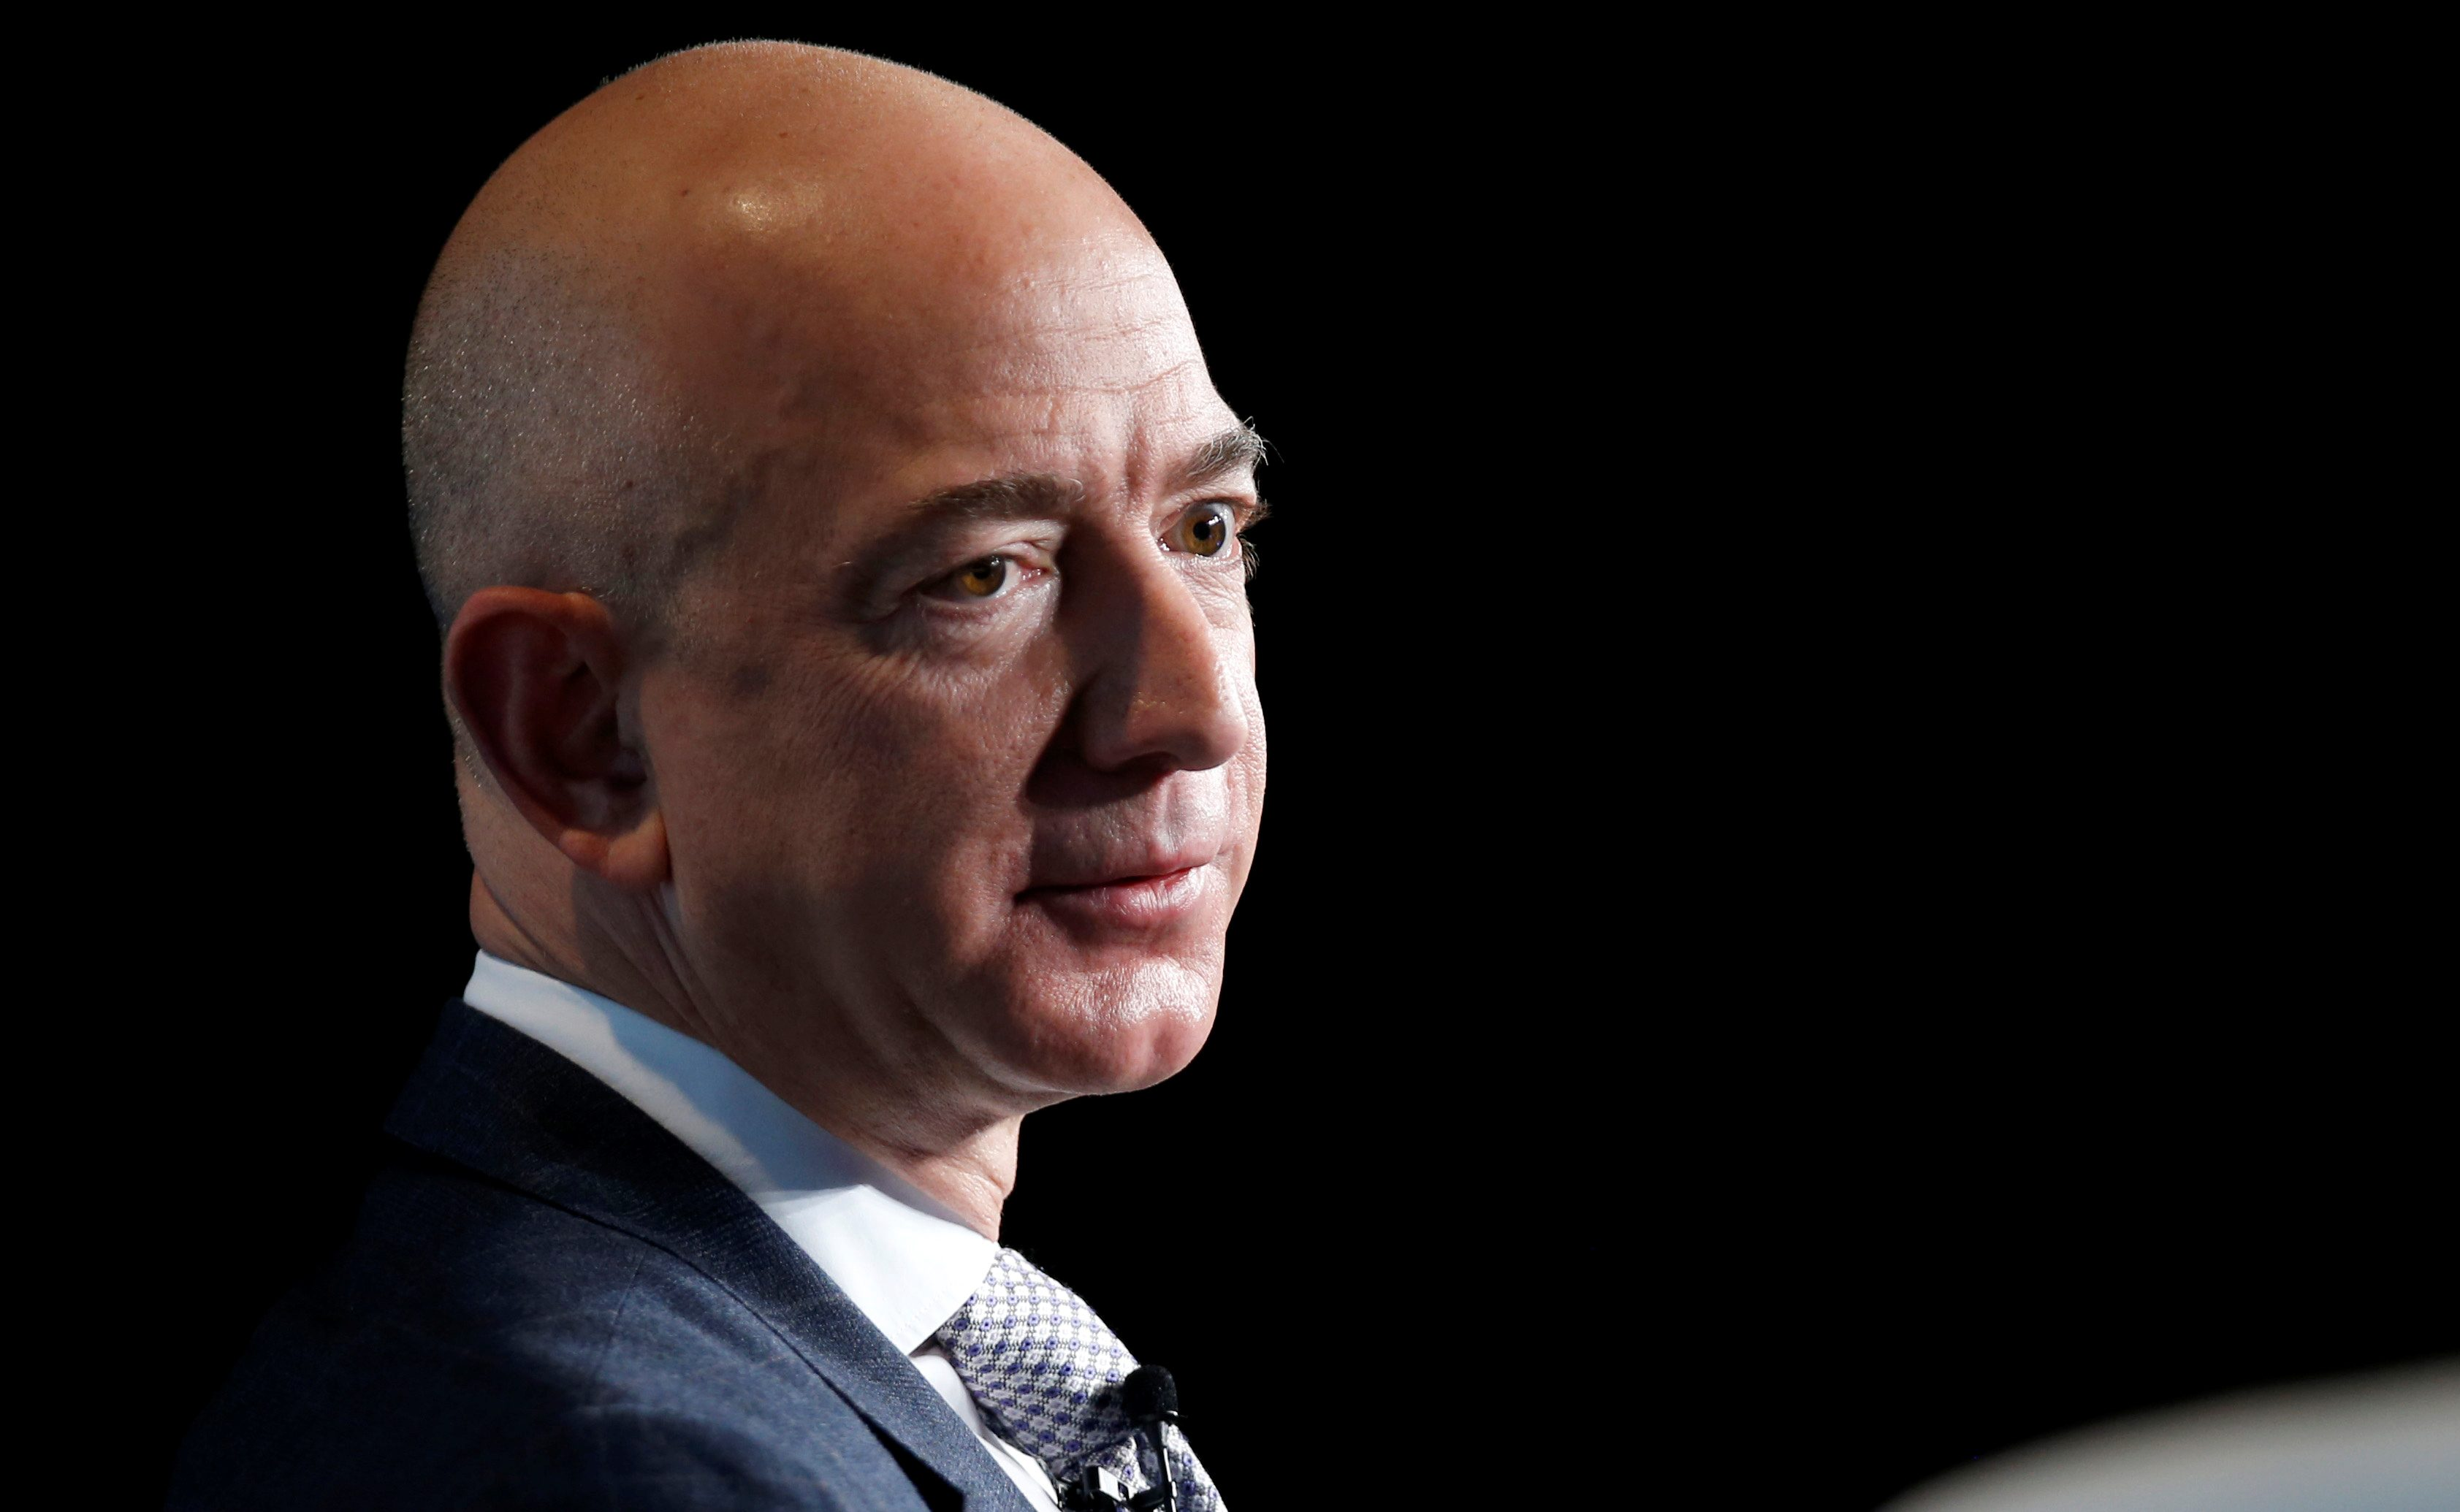 Amazon CEO Jeff Bezos looks skeptical.